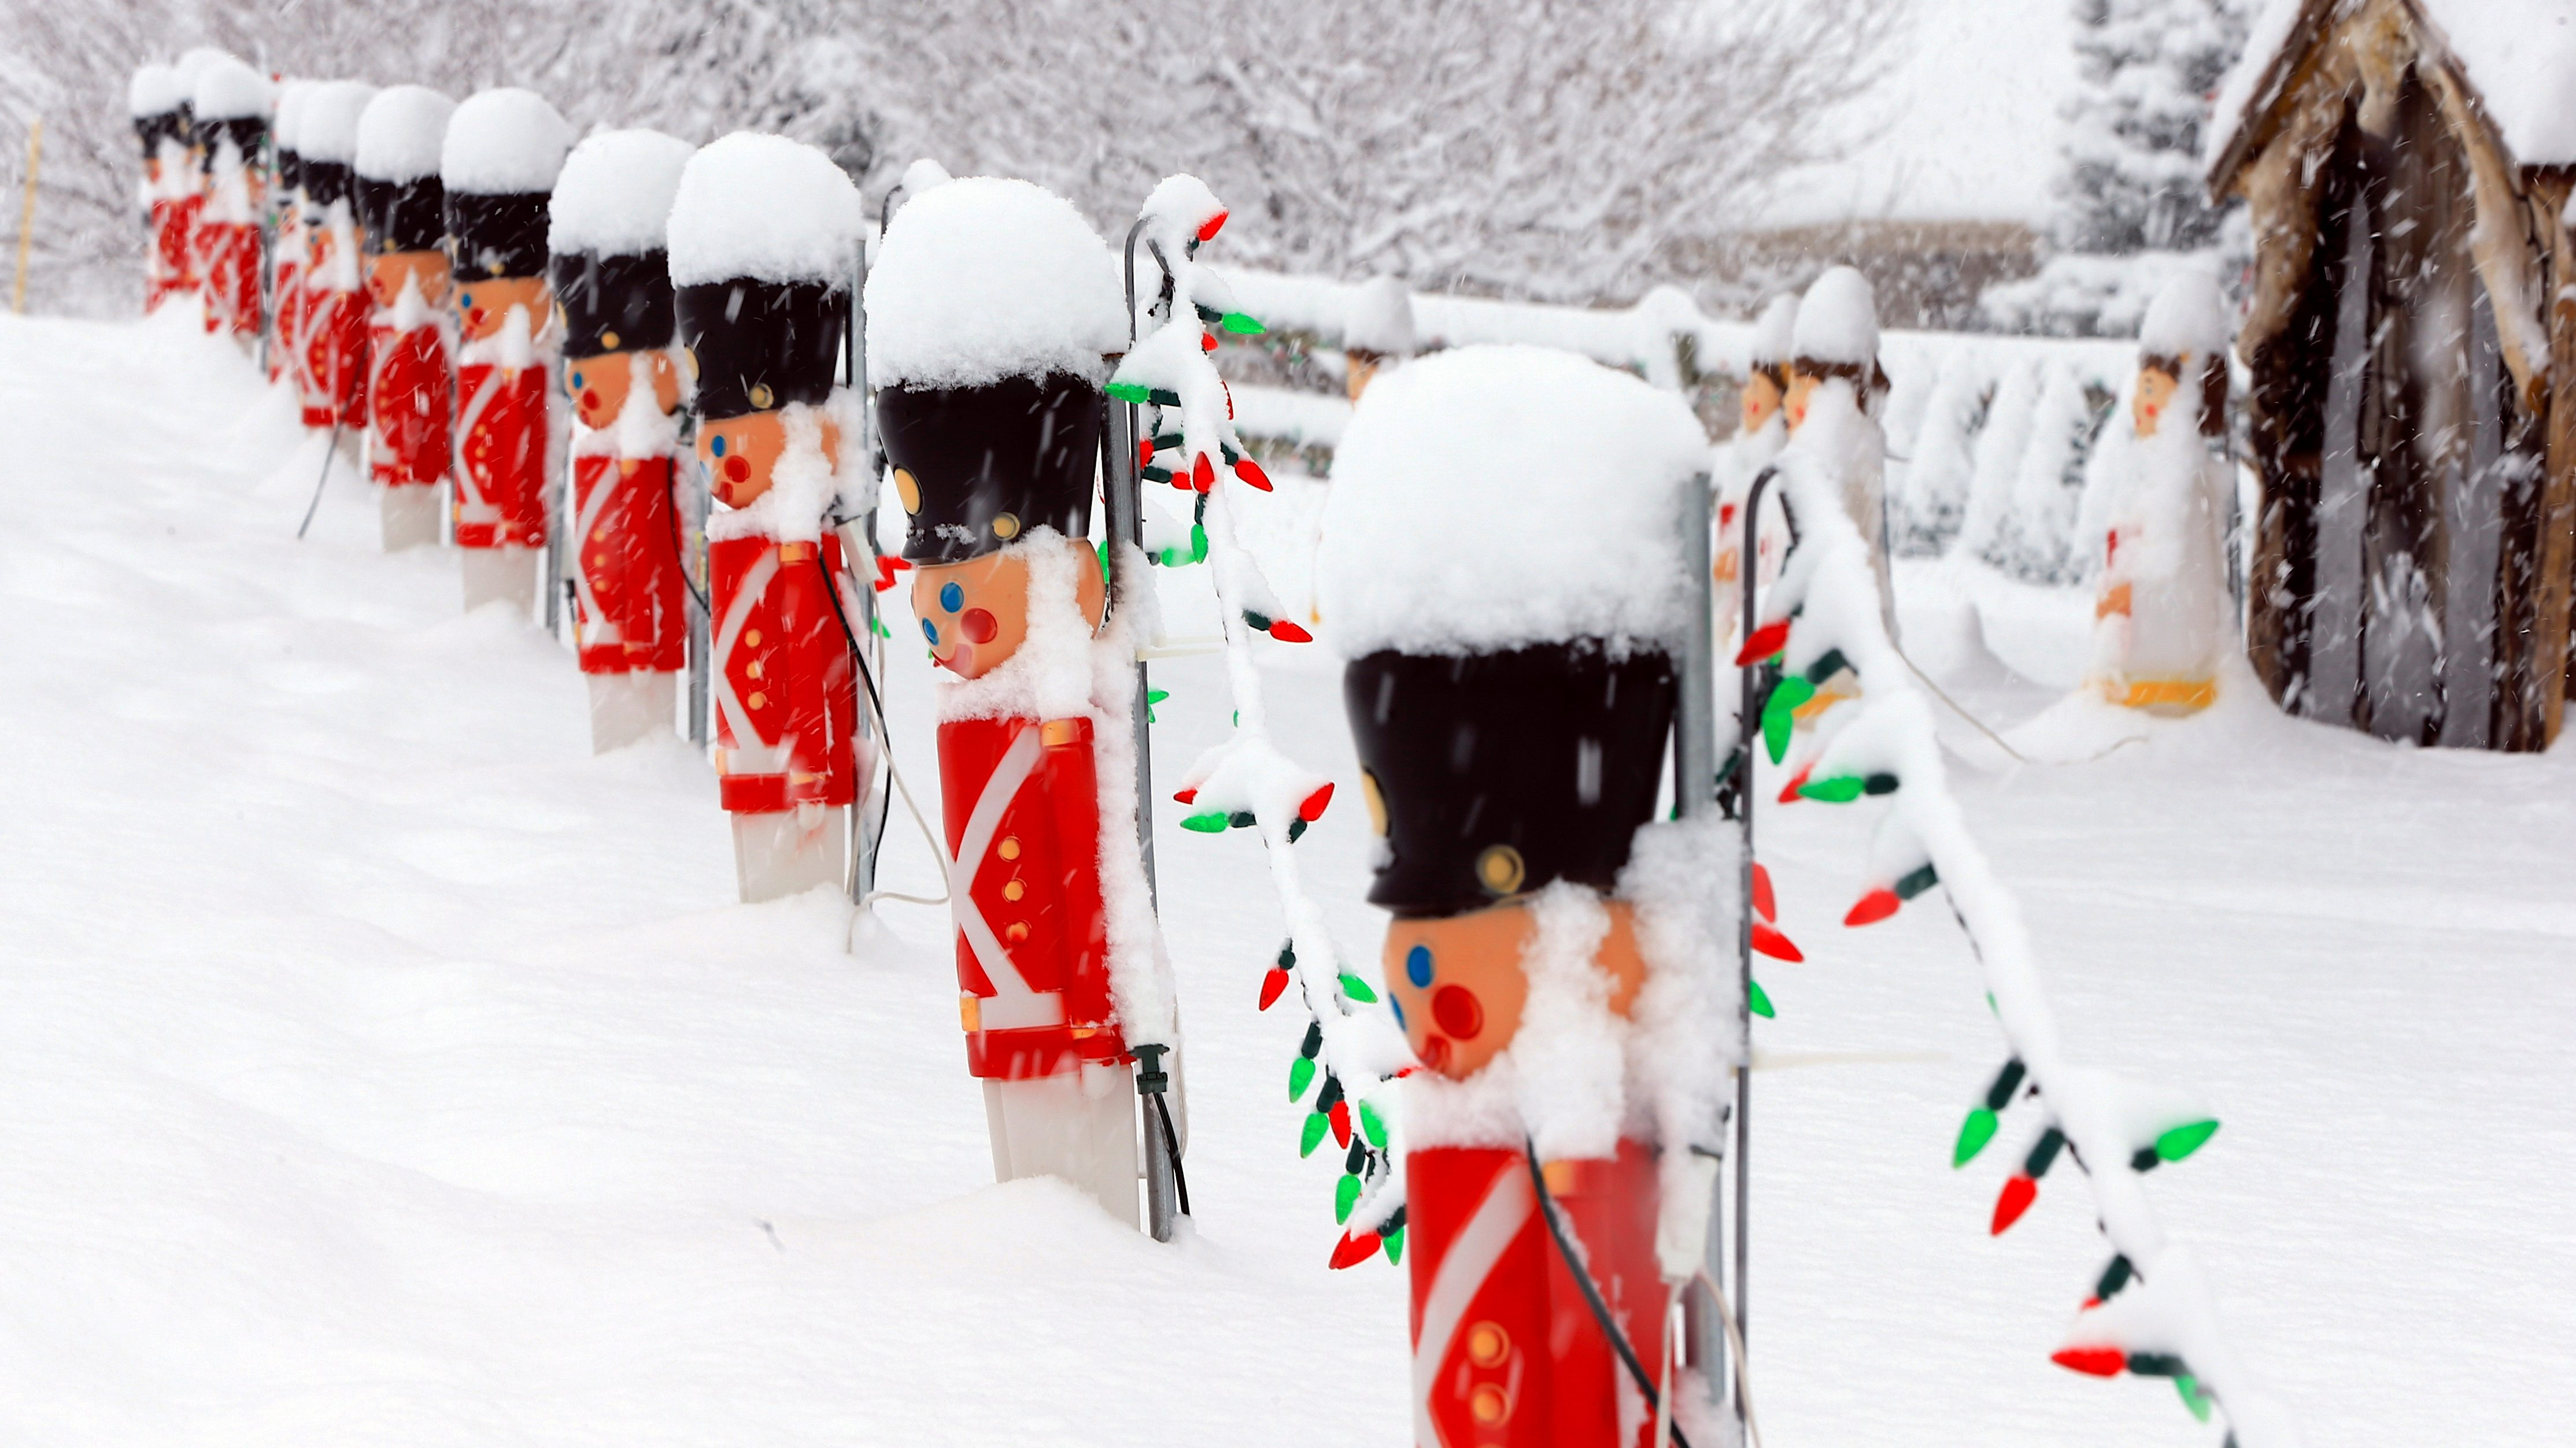 Chances For A White Christmas 2021 Accuweather 2020 White Christmas Forecast What Can You Expect To Wake Up To See This Holiday Accuweather